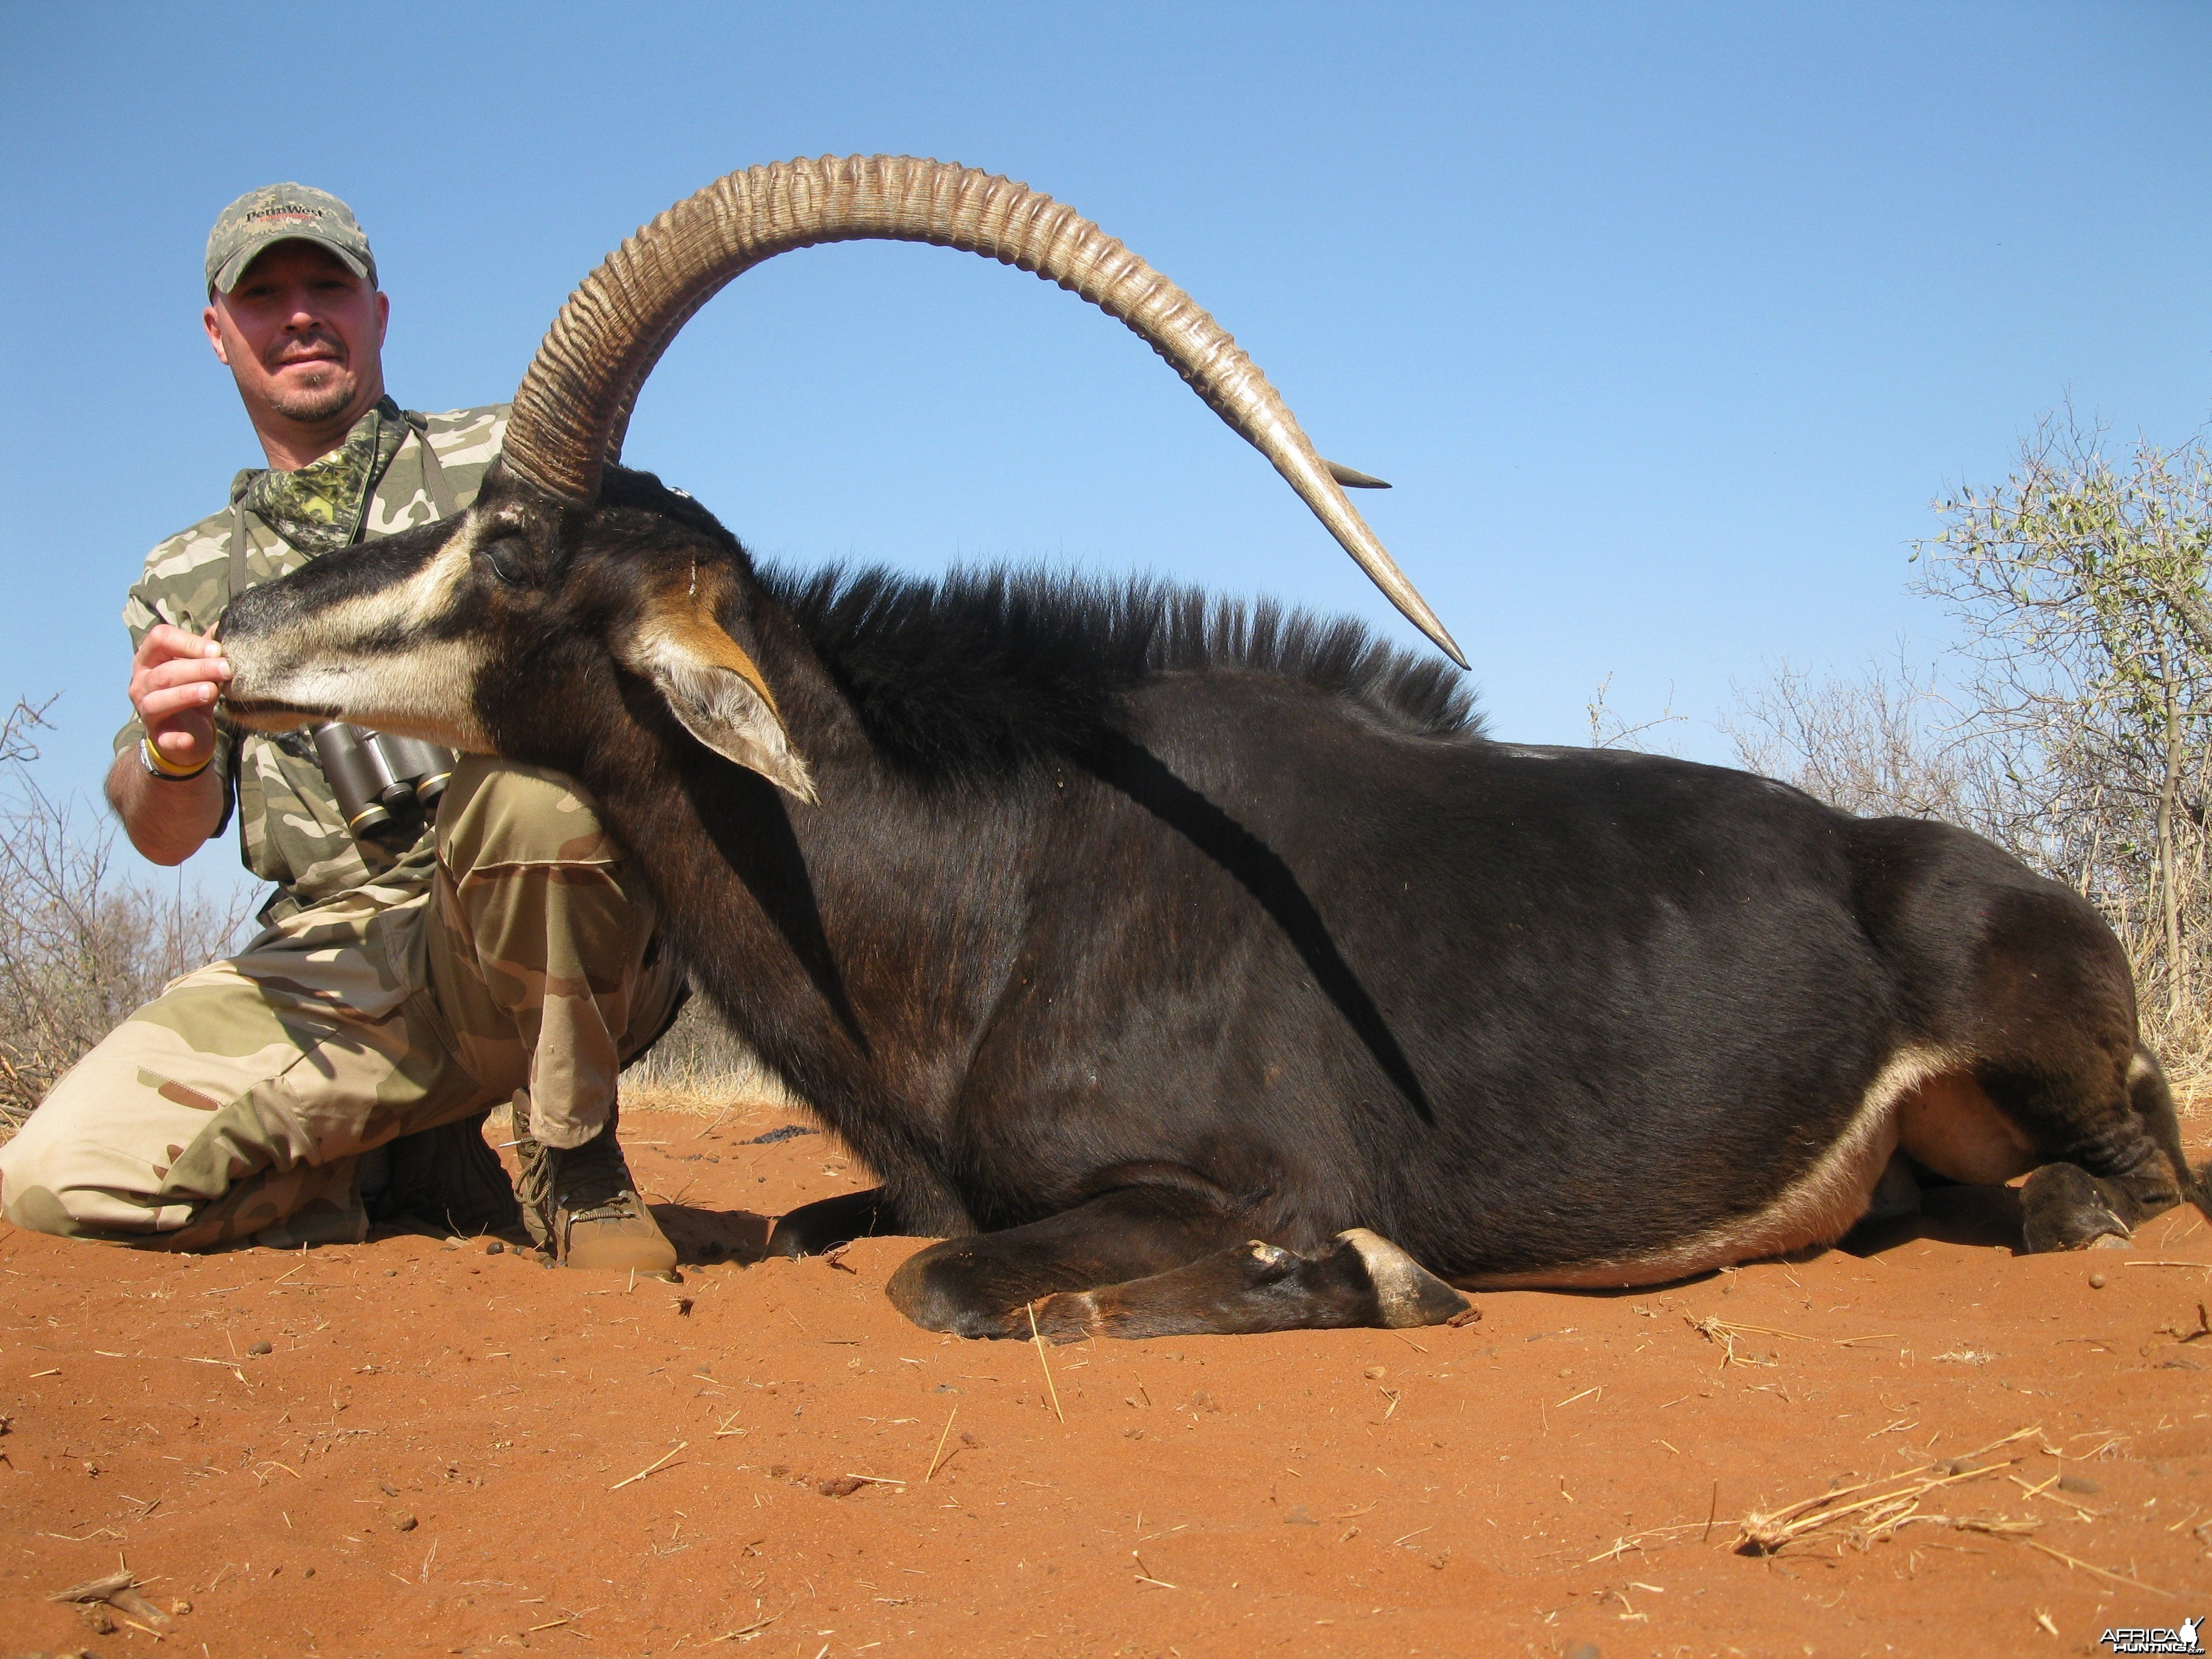 "2012 Sable, 42 1/2"", Limpopo"